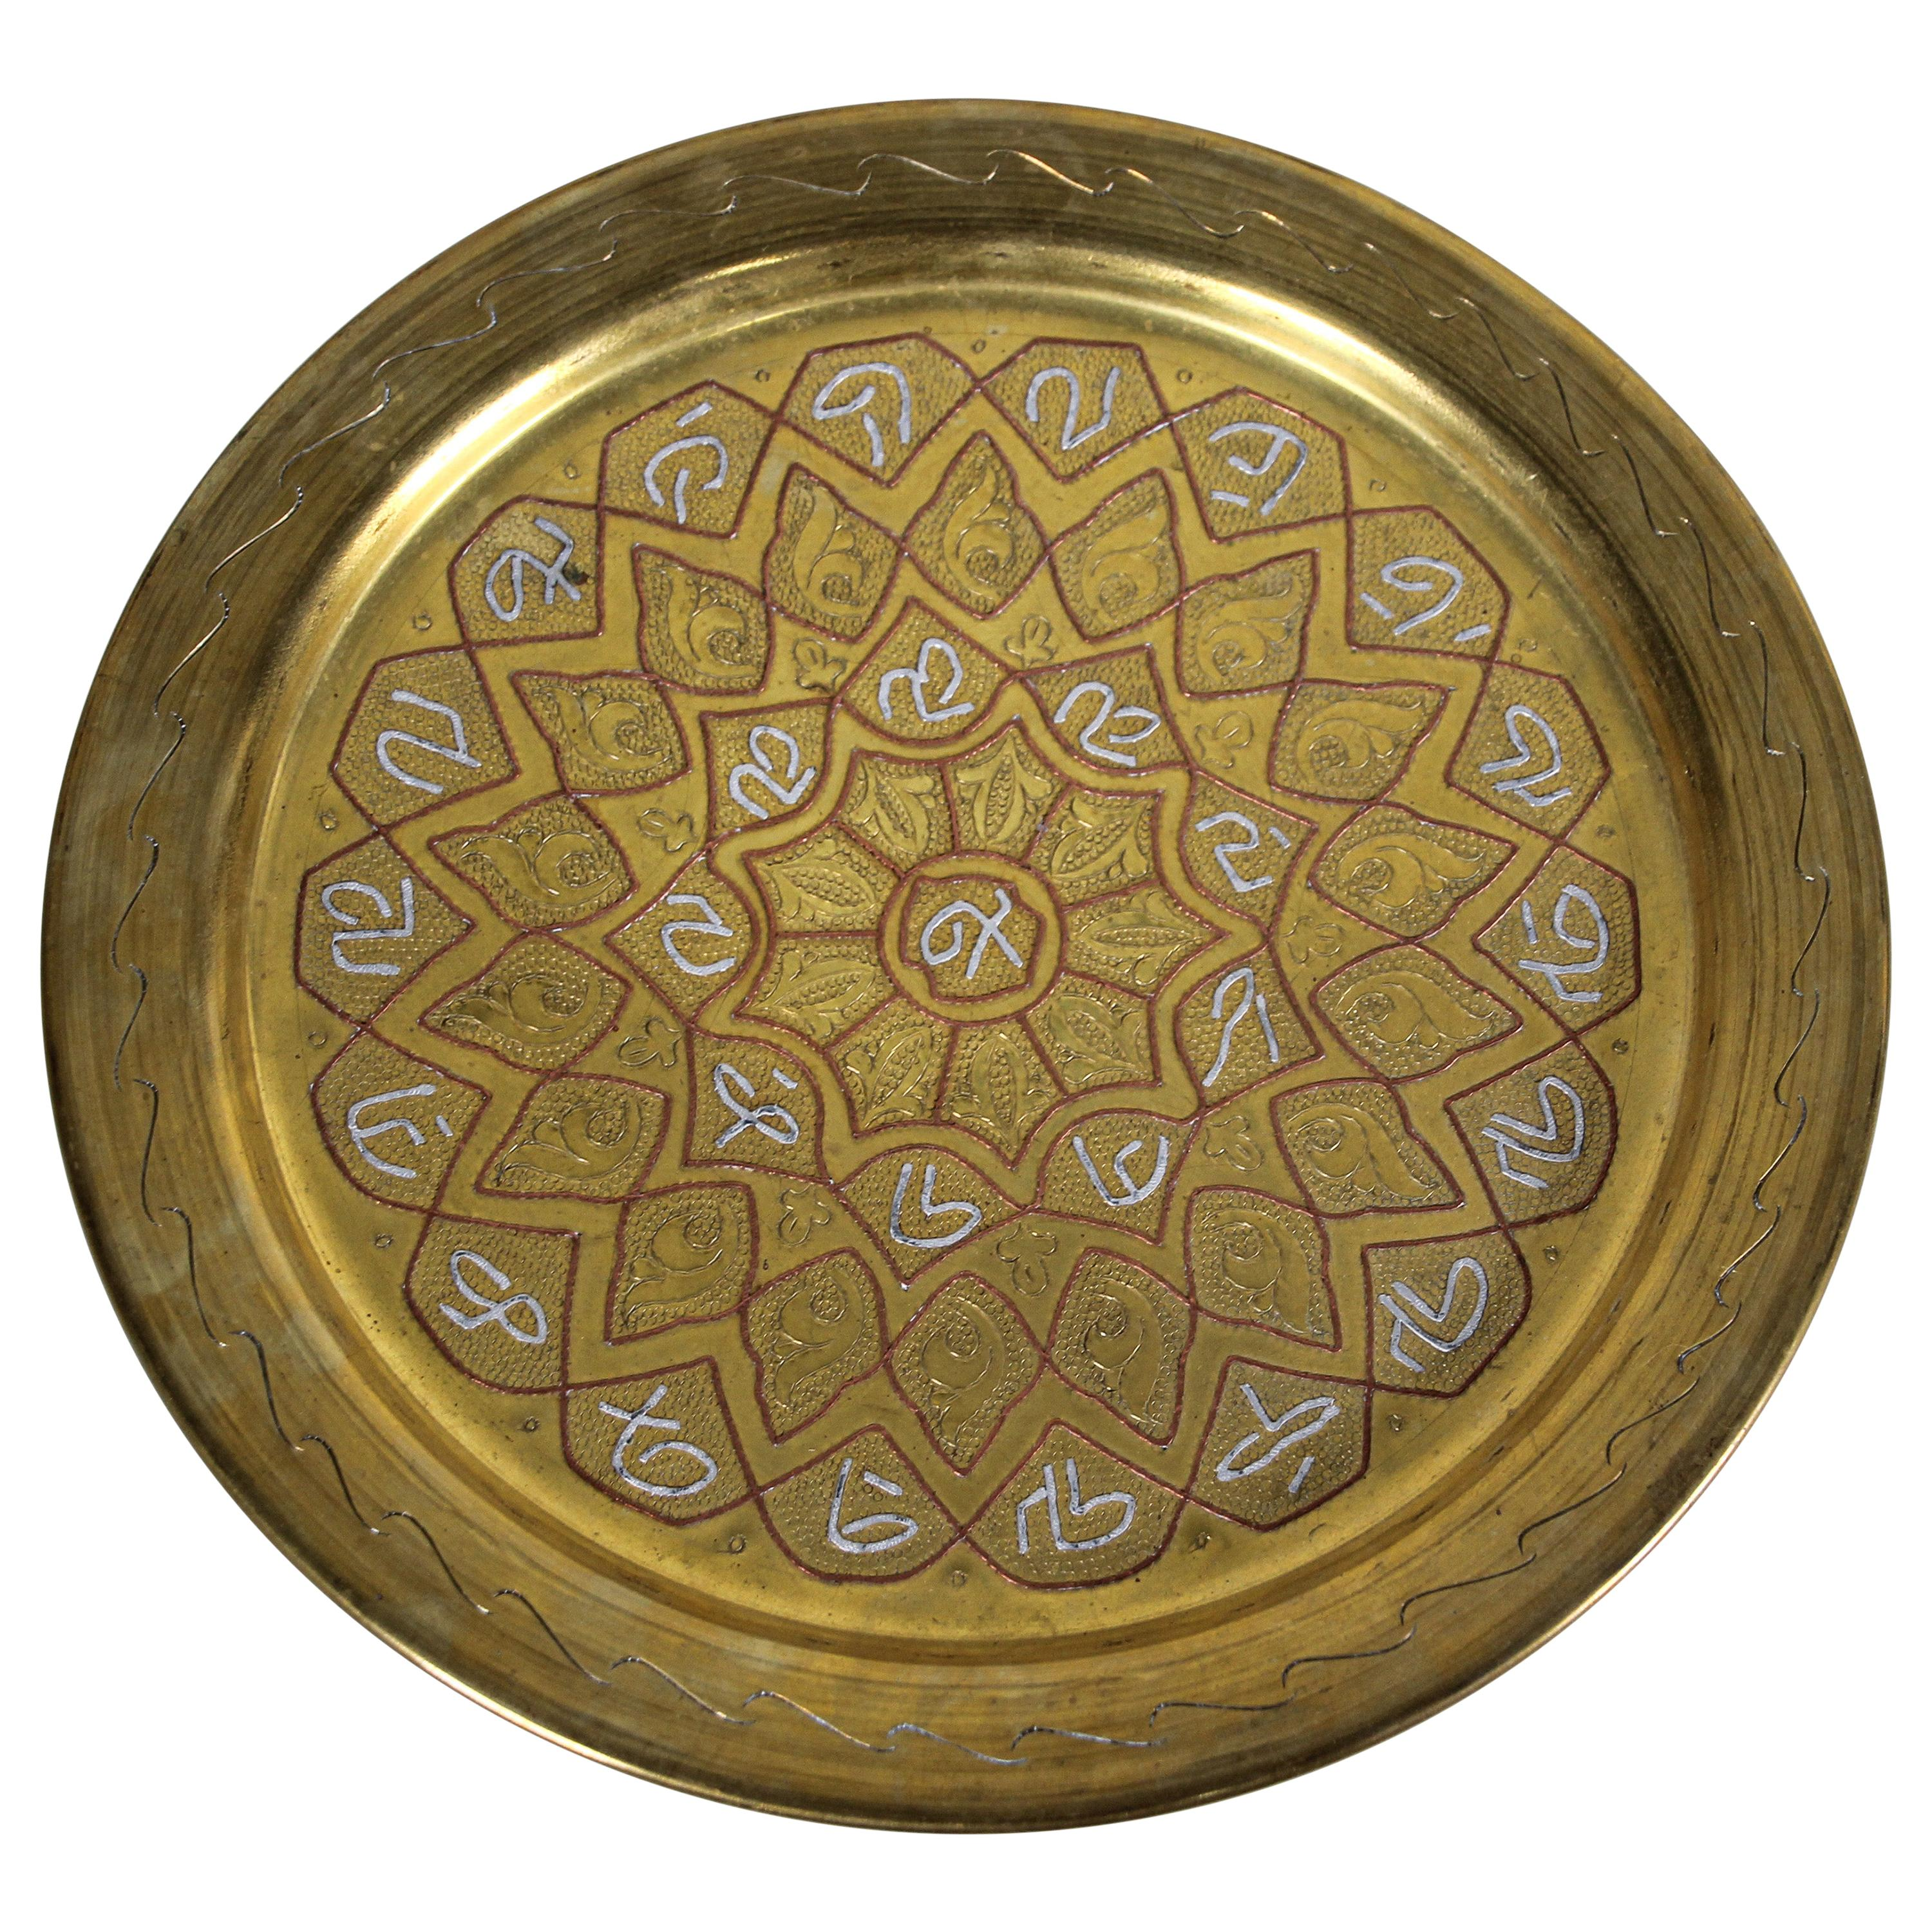 Egyptian Middle Eastern Tray Overlaid with Islamic Writing in Silver